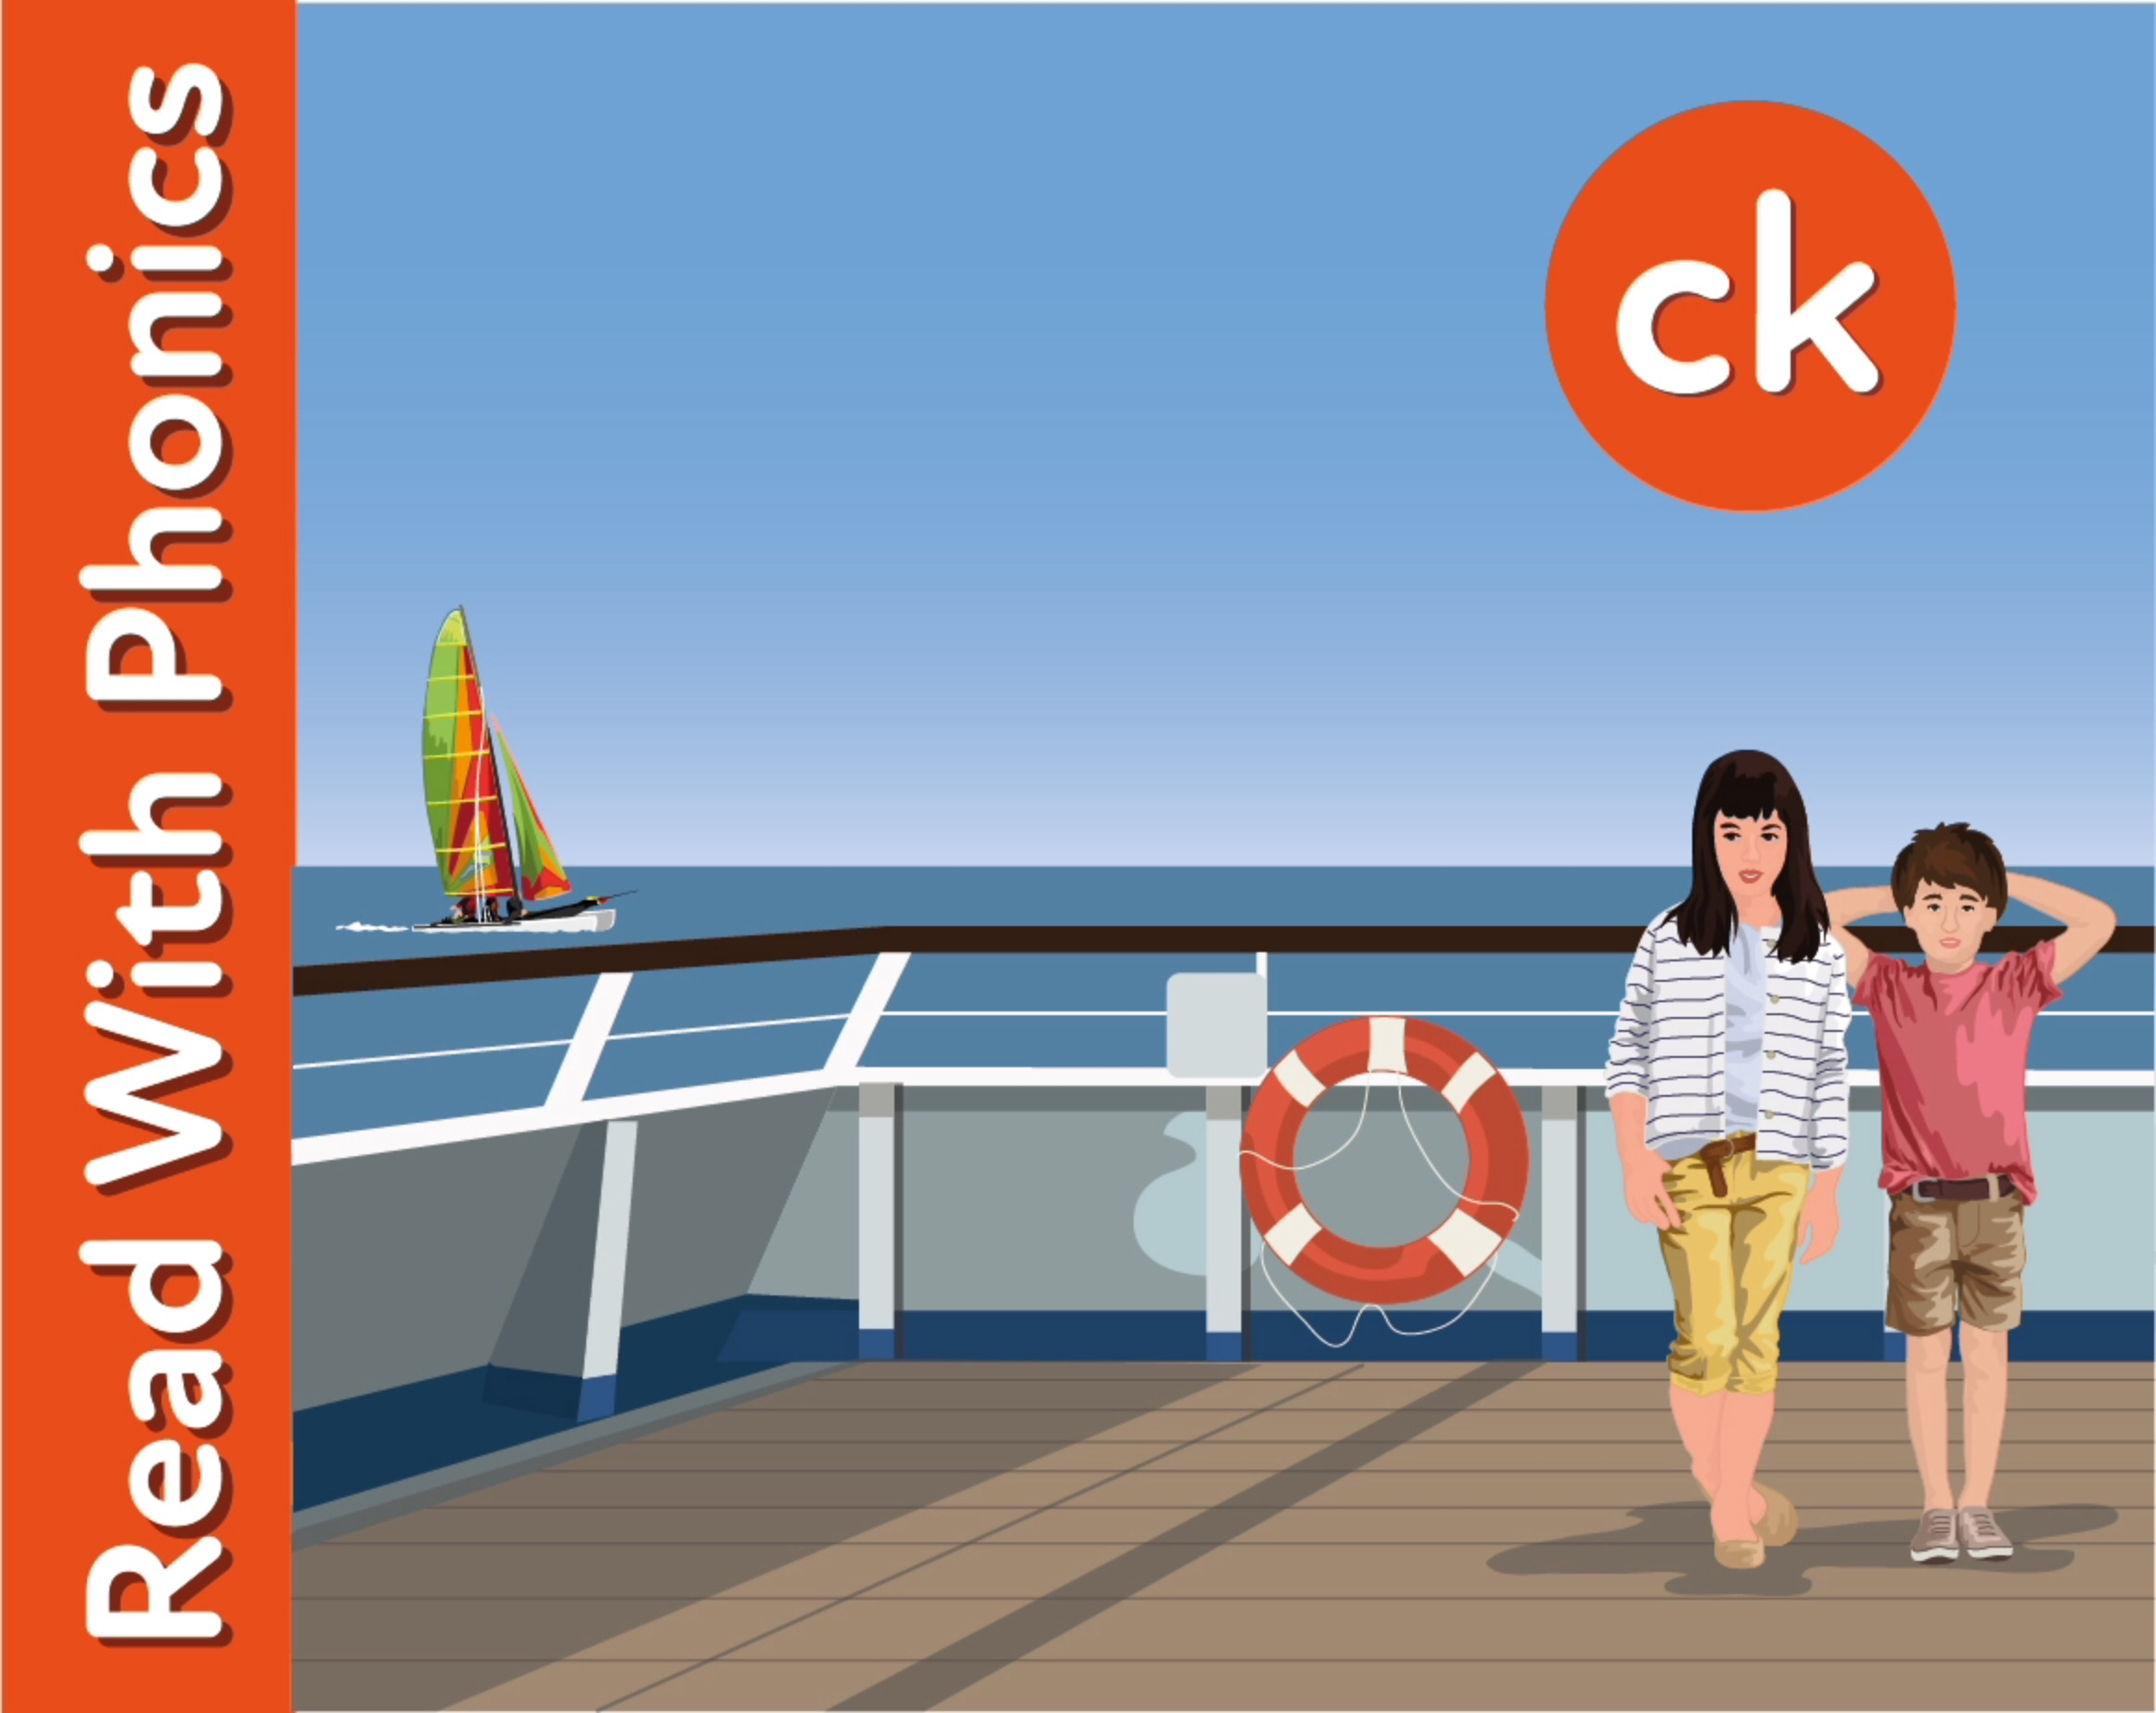 Learn the ending CK as in rock and dock